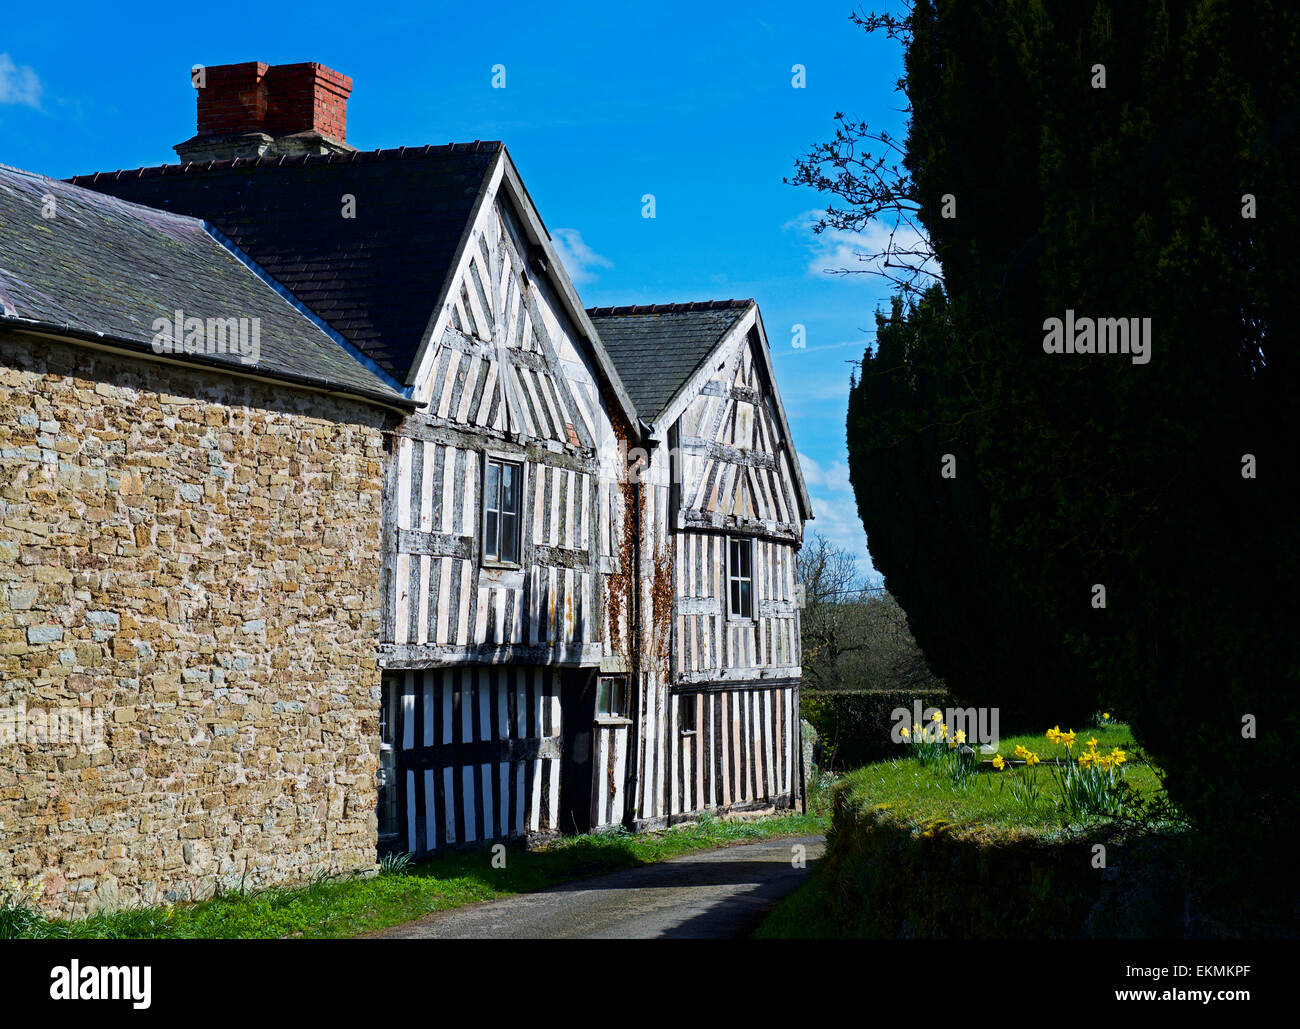 Half-timbered house in the village of More, Shropshire, England UK Stock Photo